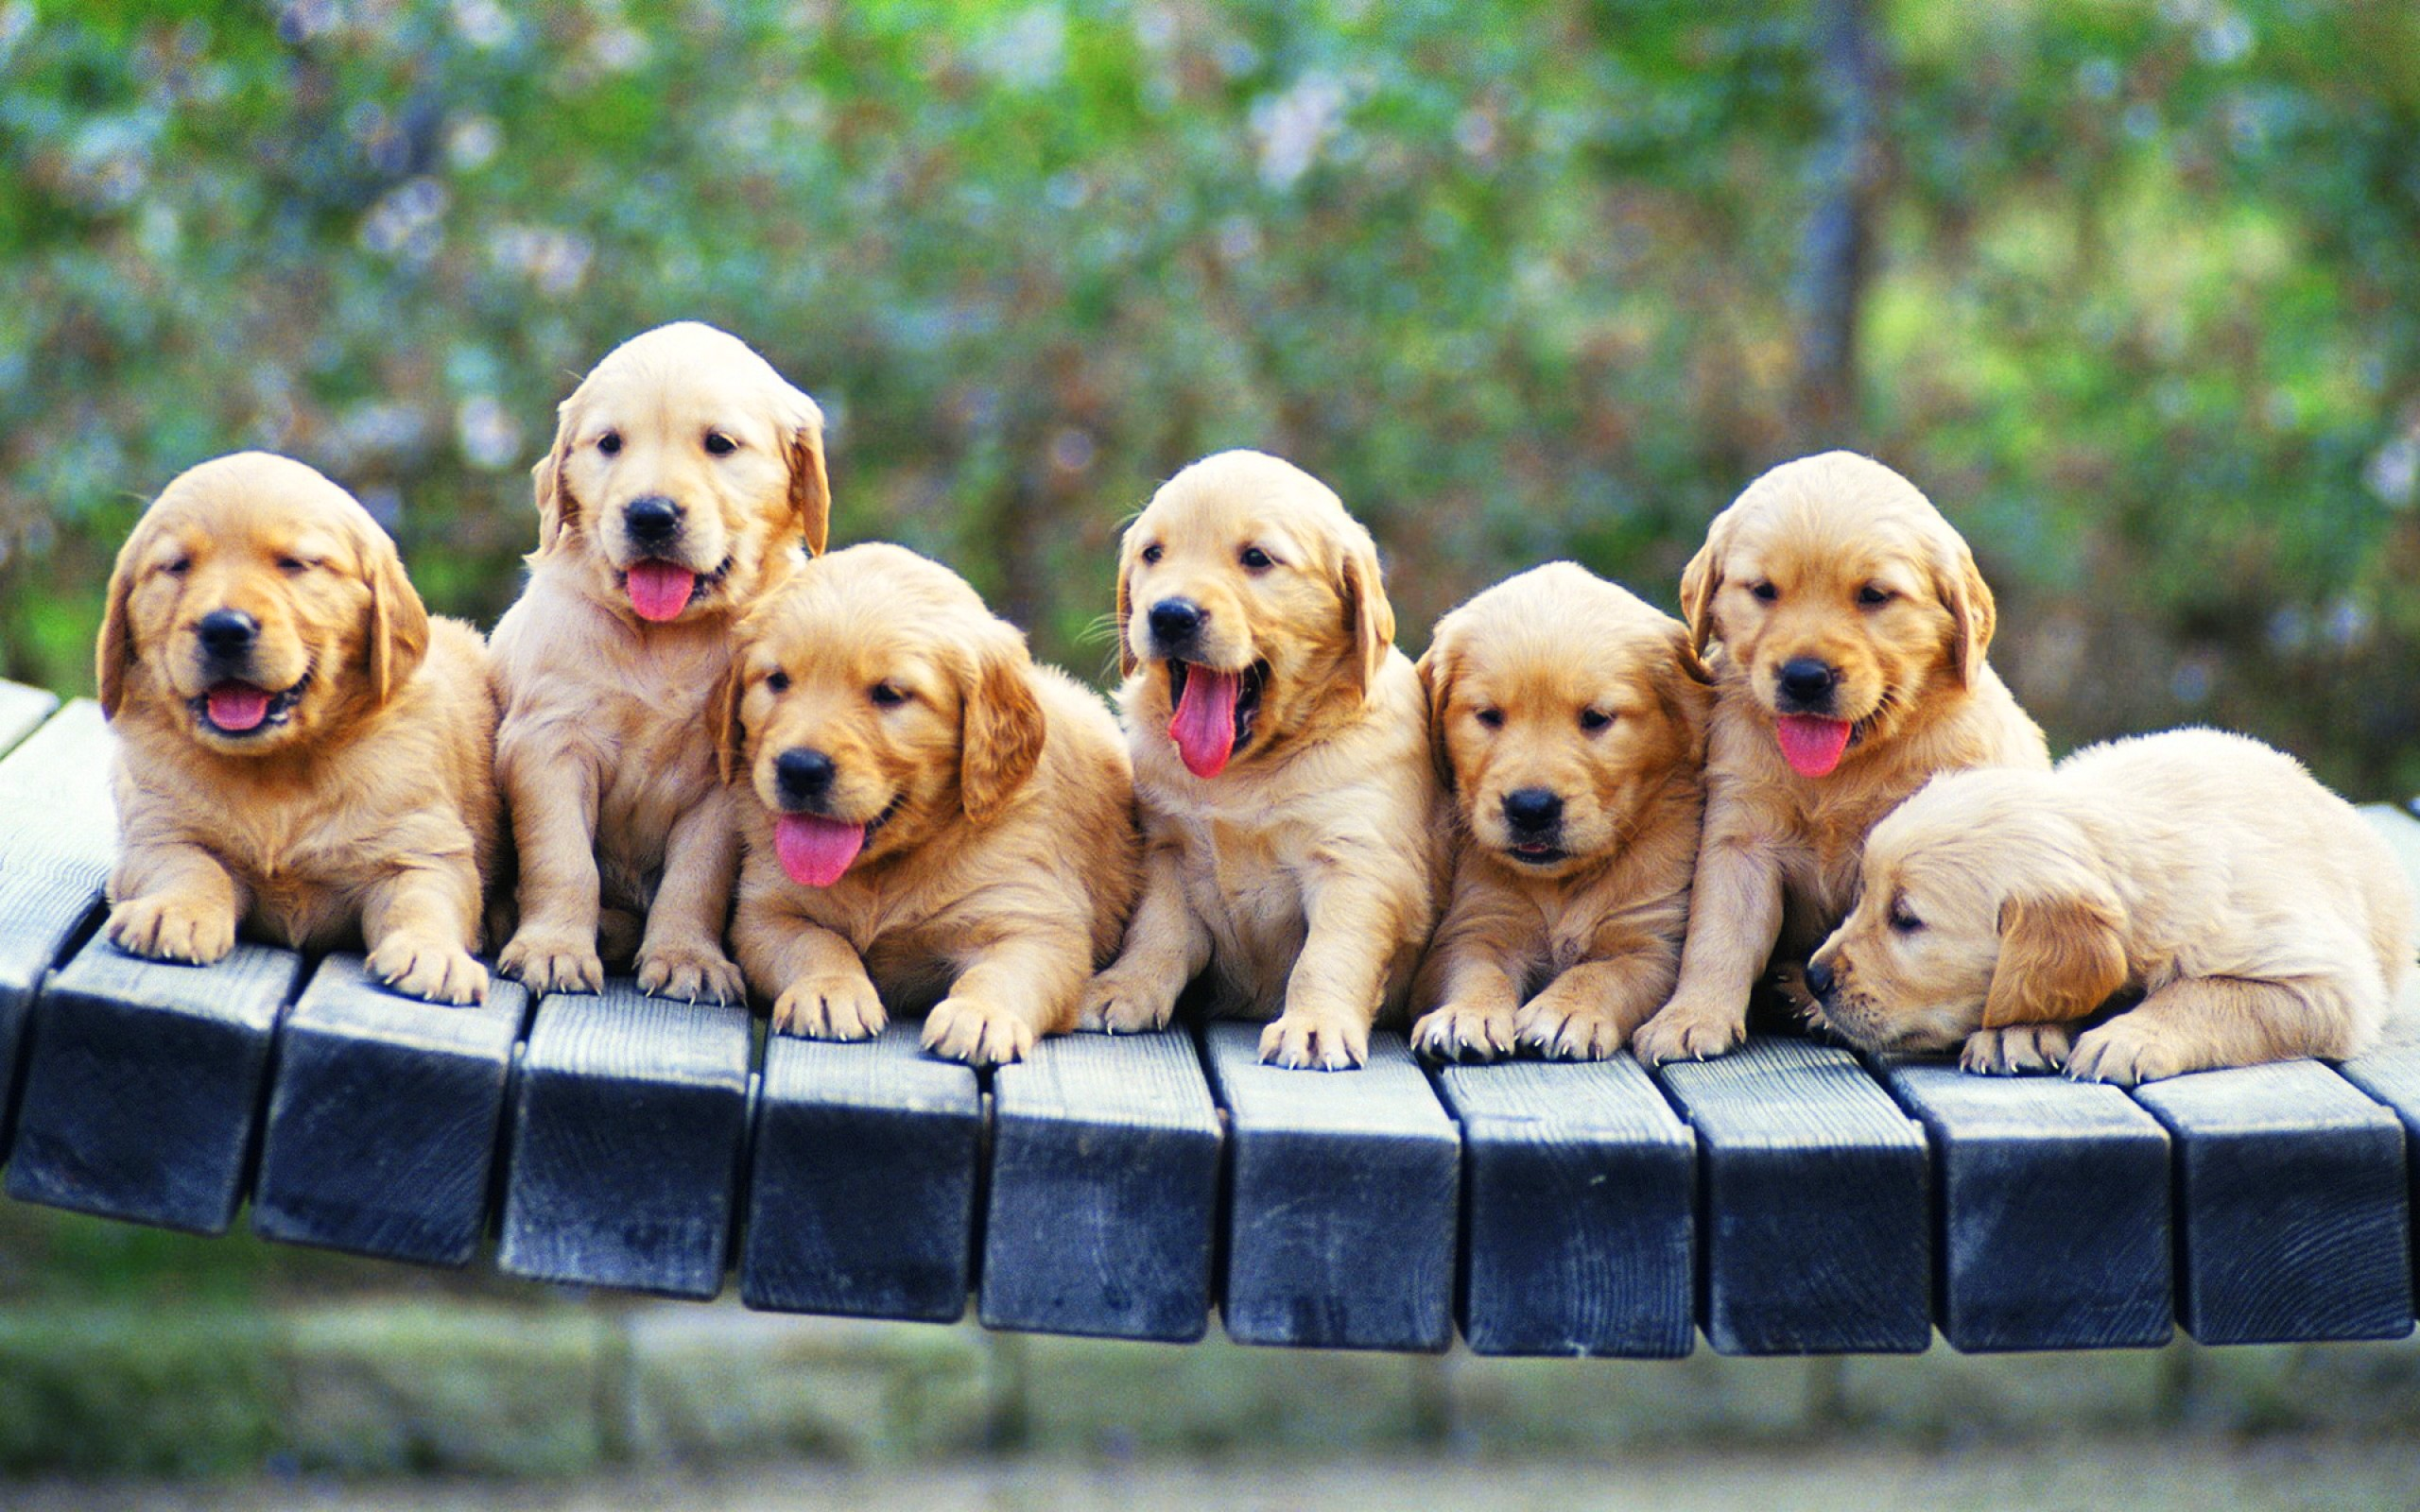 puppies free wallpaper - wallpaper, high definition, high quality